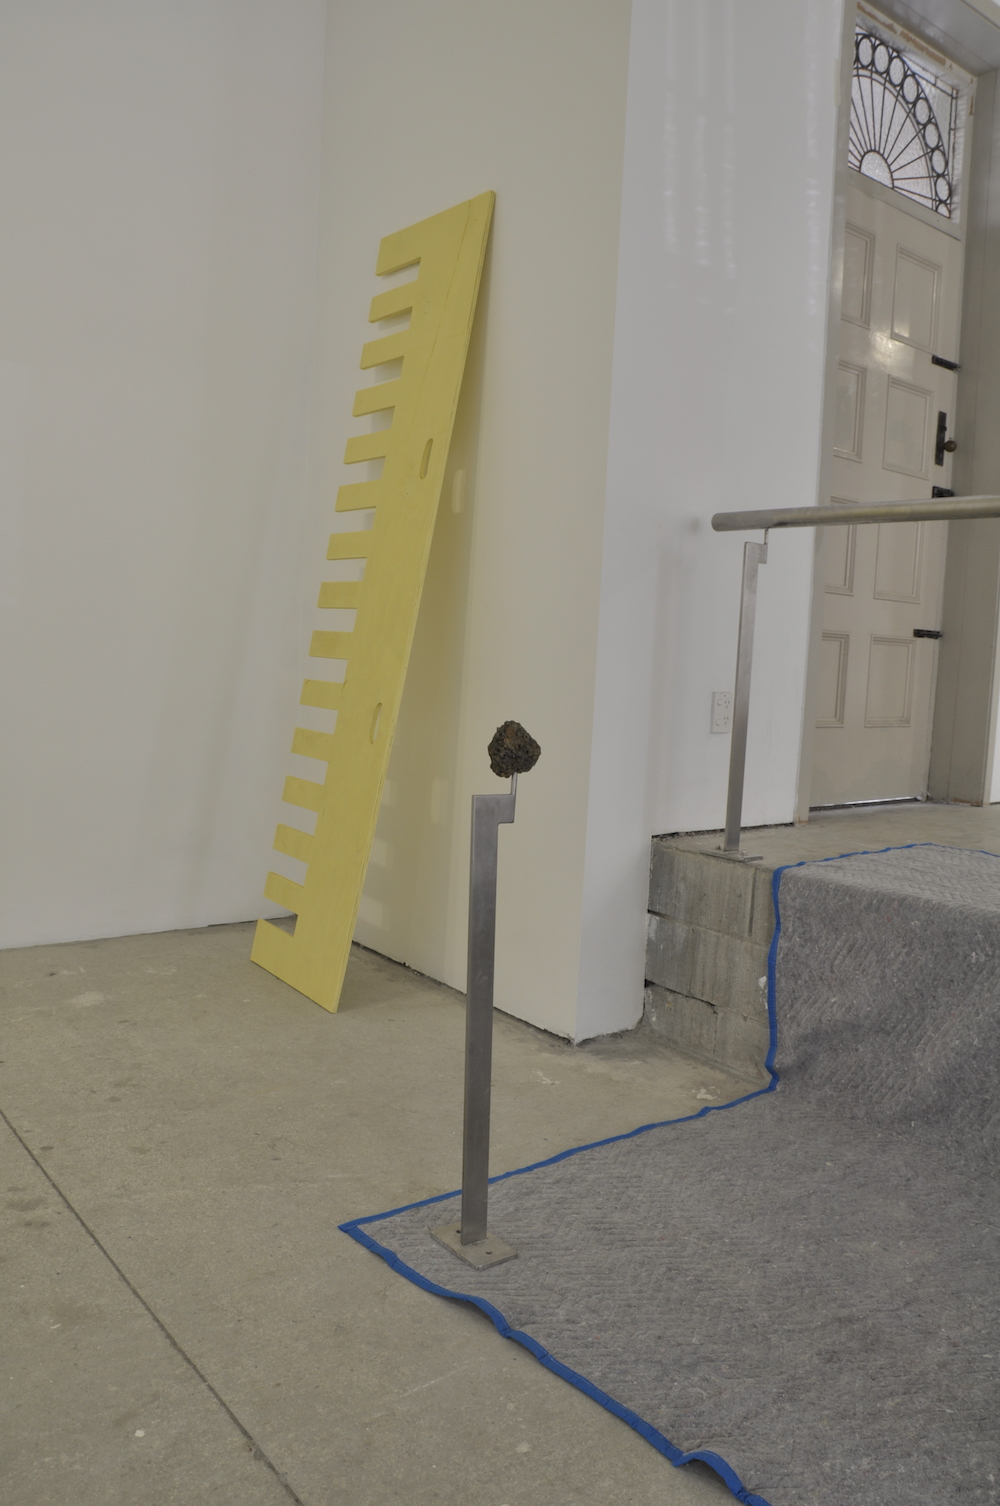 Lucy-Meyle-and-Ziggy-Lever,-Working-Together,-installation-view-(comb),-ST-Paul-St-Gallery-Three,-2015.JPG